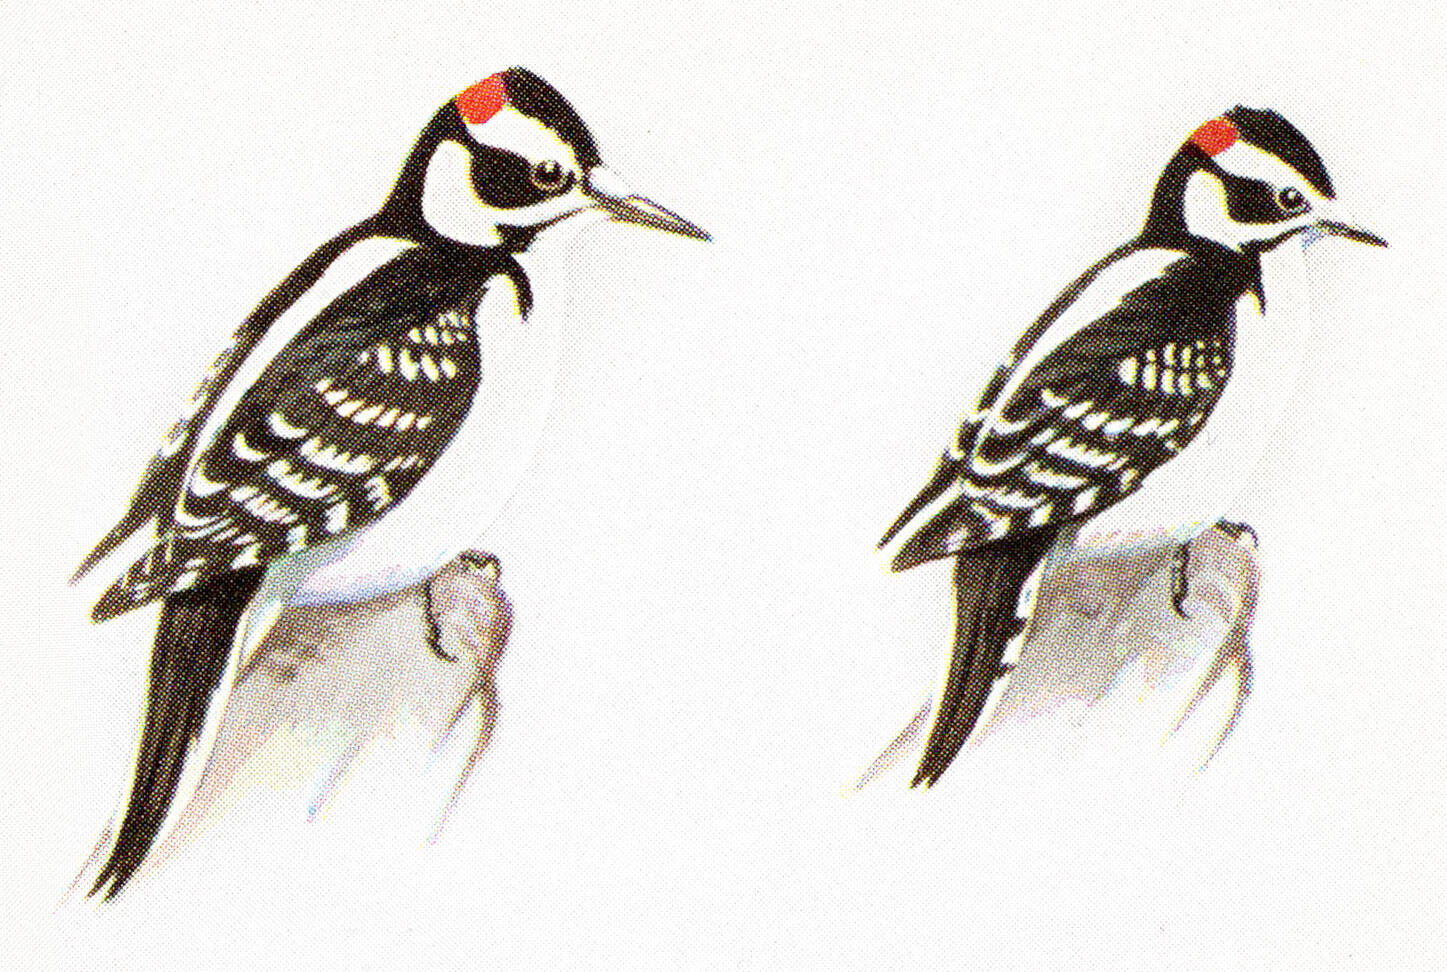 """Left: Hairy Woodpecker. Right: Downy Woodpecker. Illustrations from the book """"A Field Guide to the birds"""" by Roger Tory Peterson."""